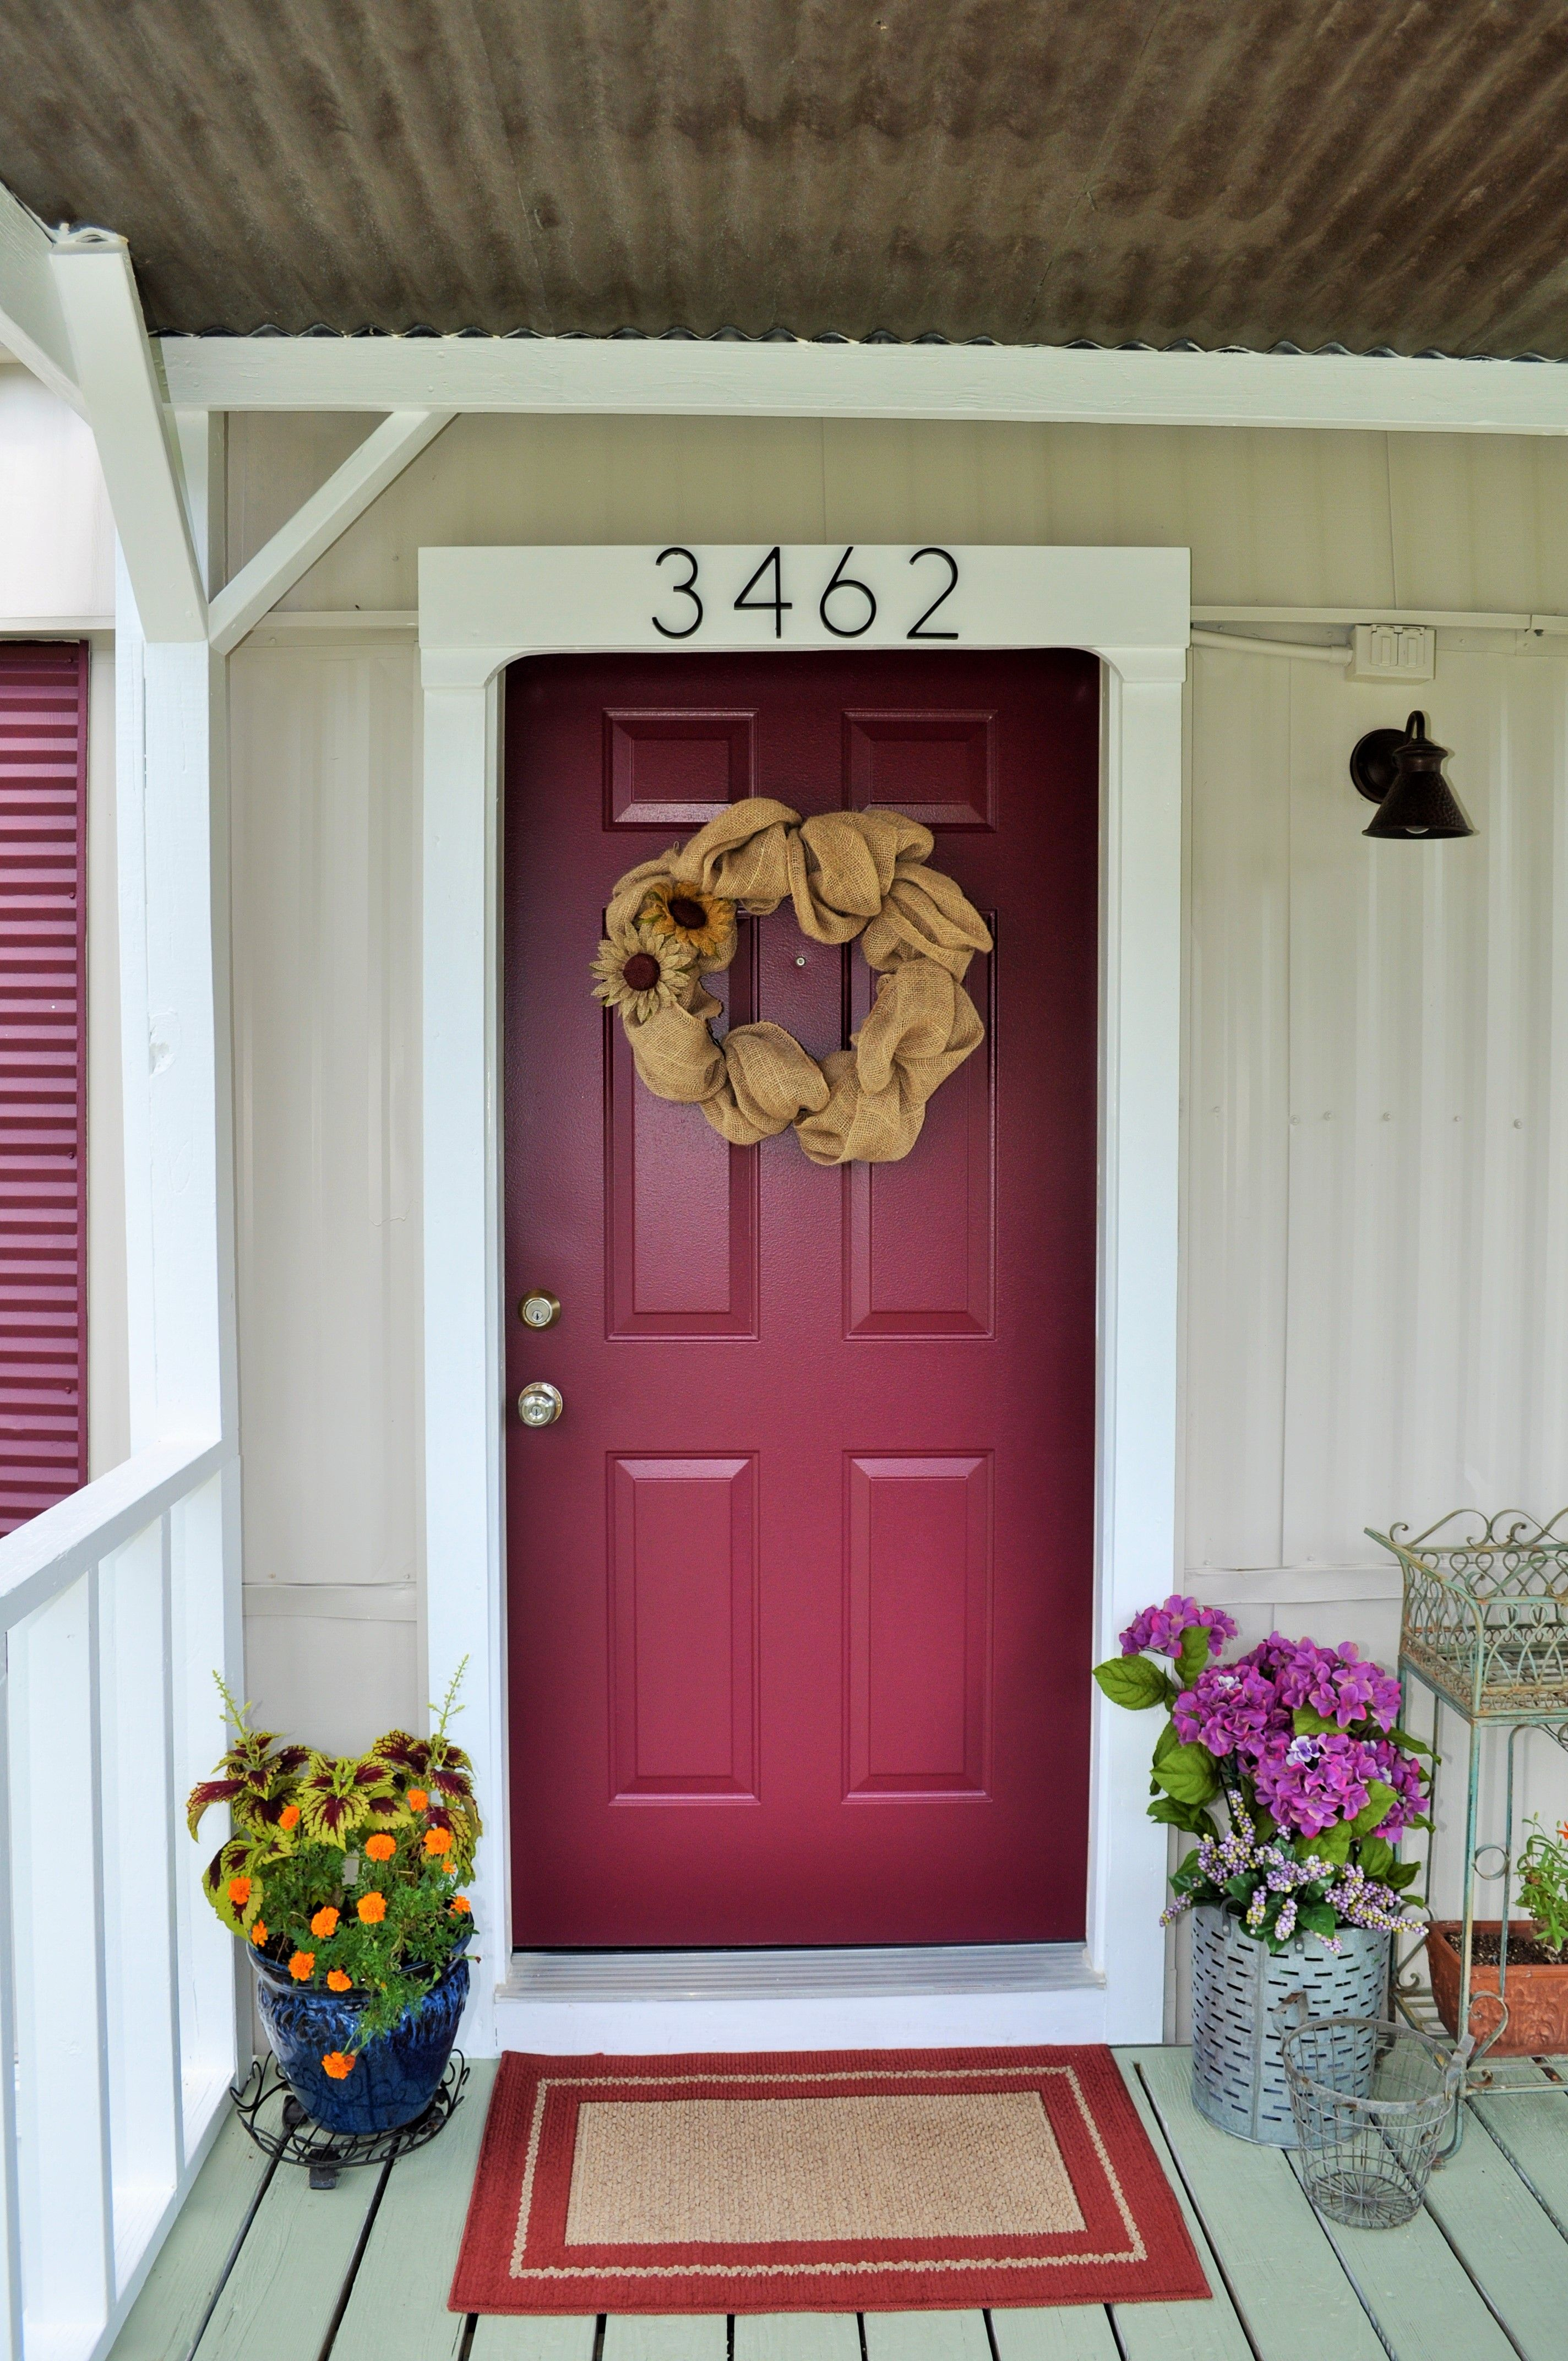 Mobile Home Front Door This Home Had A Smaller Mobile Home Door Replaced With A 36 Inch Stand Mobile Home Doors Remodeling Mobile Homes Mobile Home Makeovers